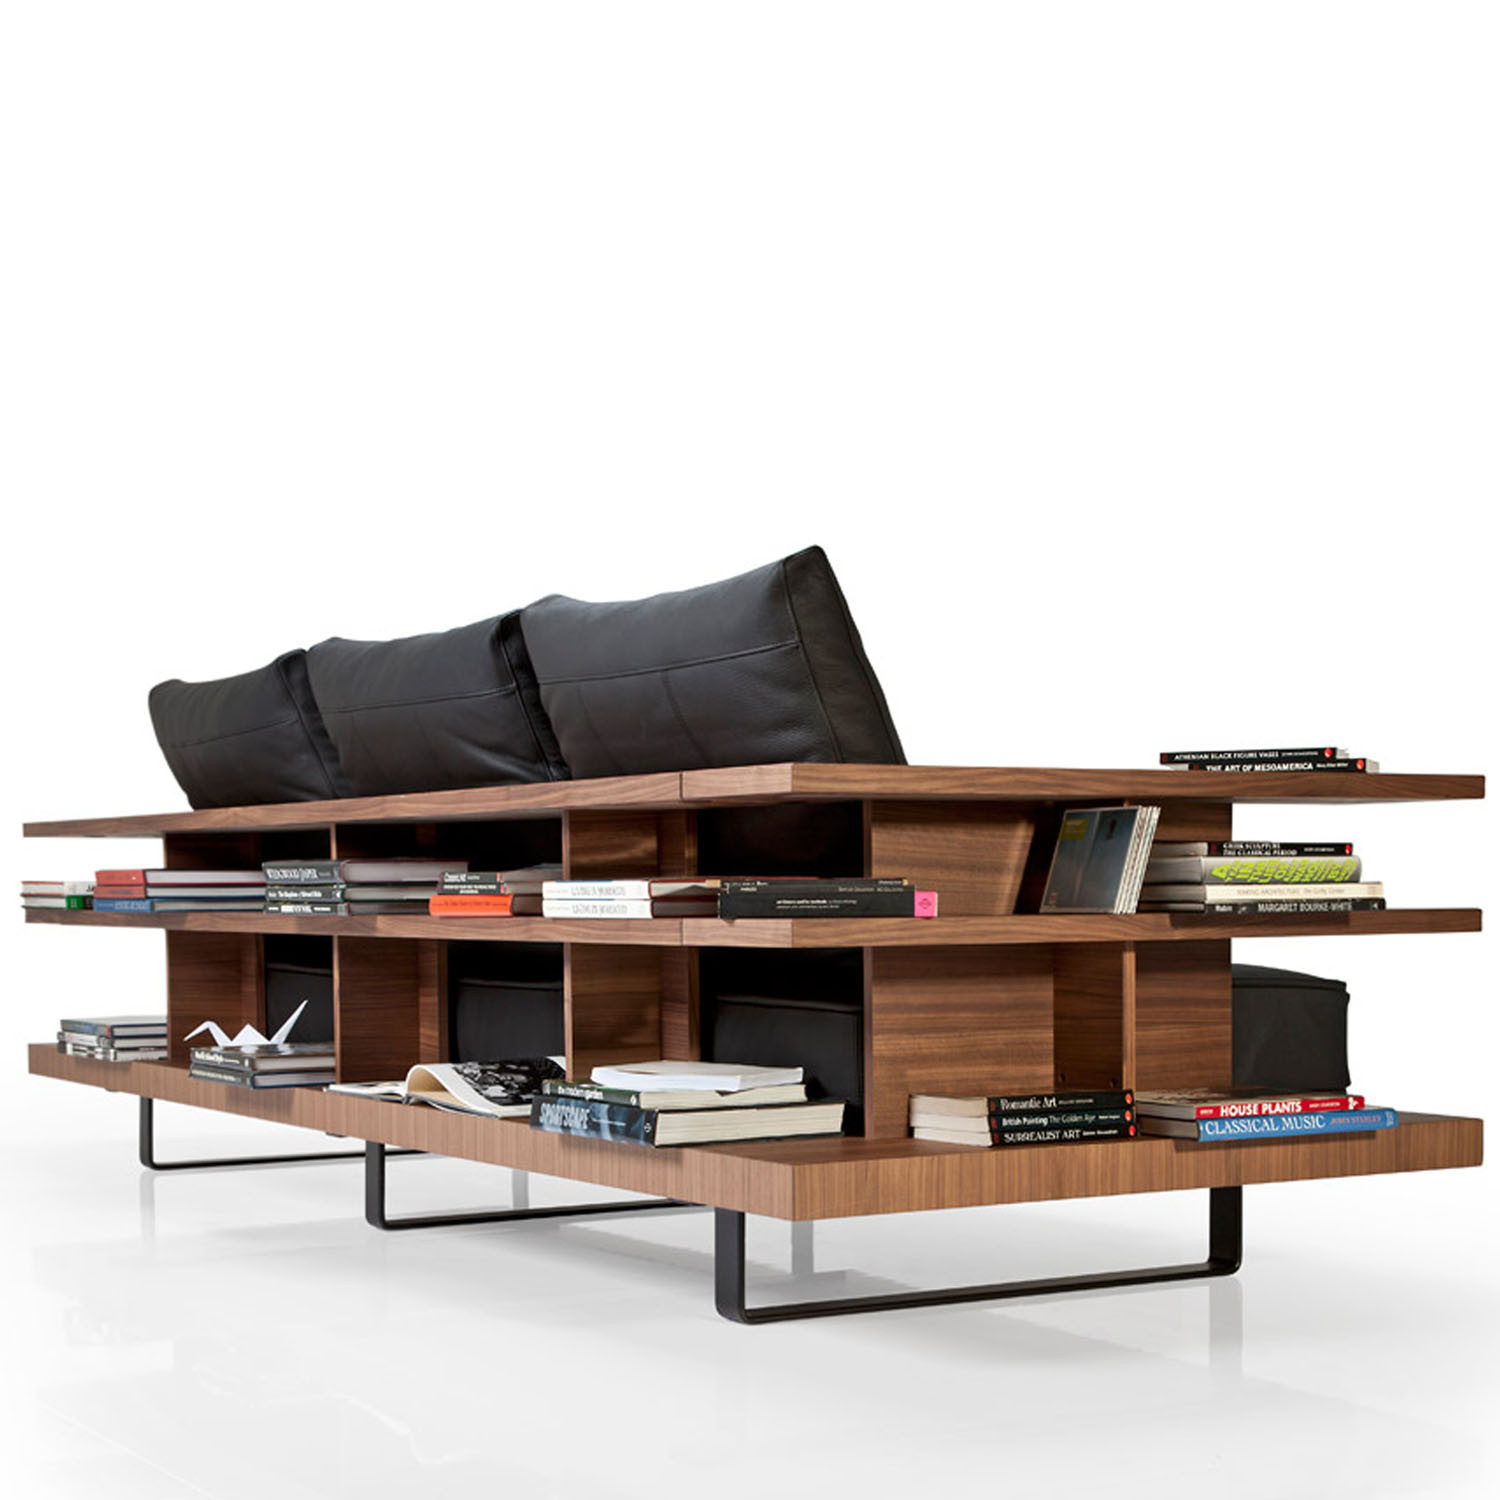 Gazel Sofa with Wooden Bookshelving